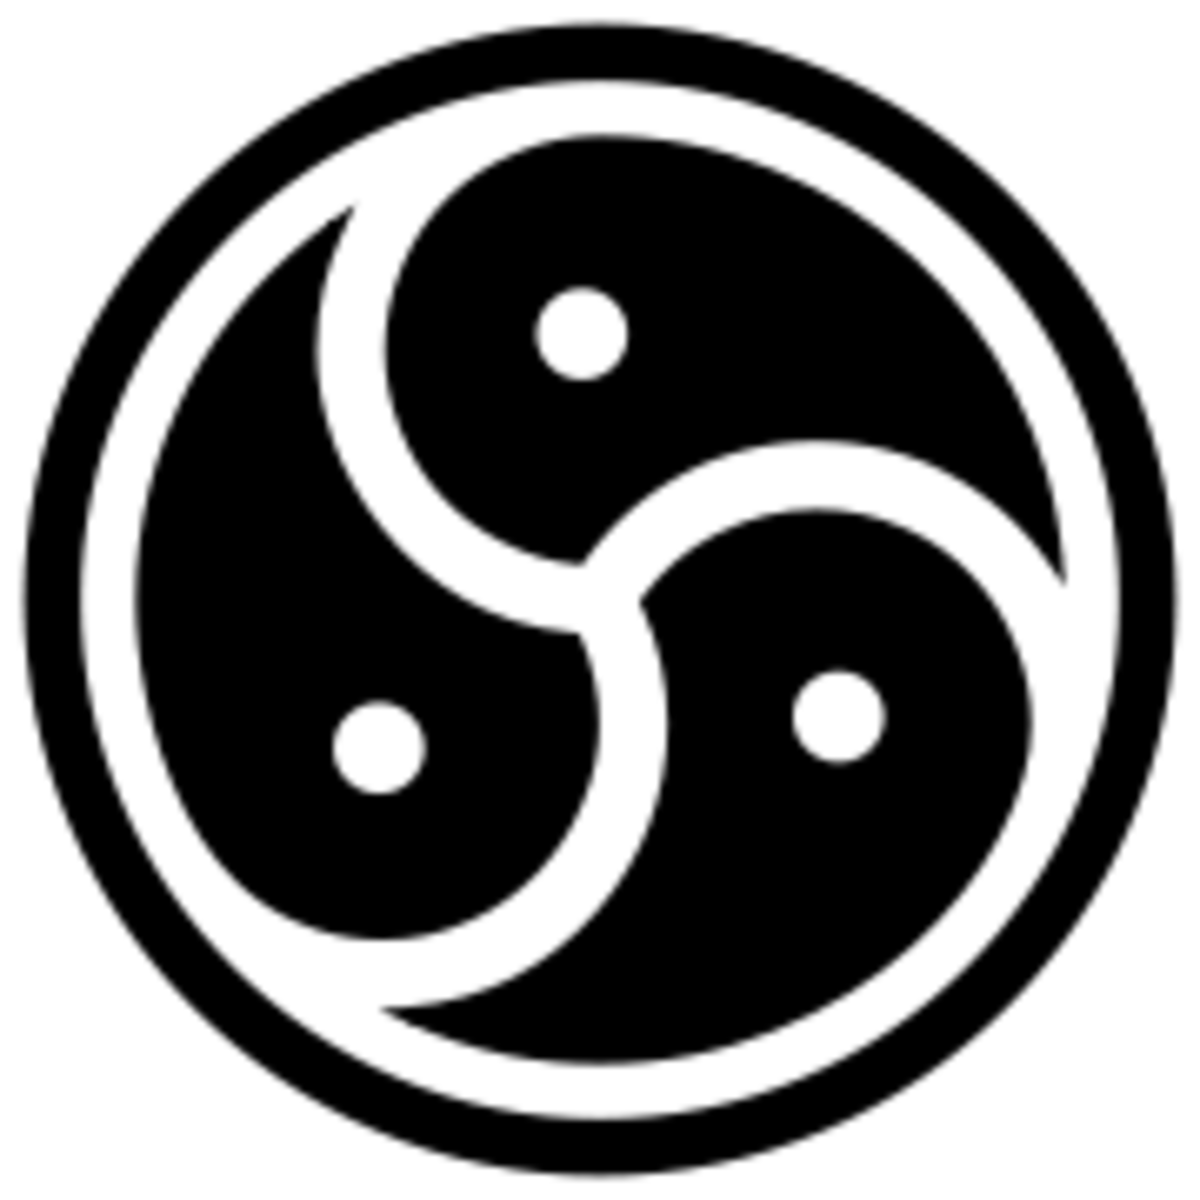 This is the commonly-accepted symbol of the BDSM community.